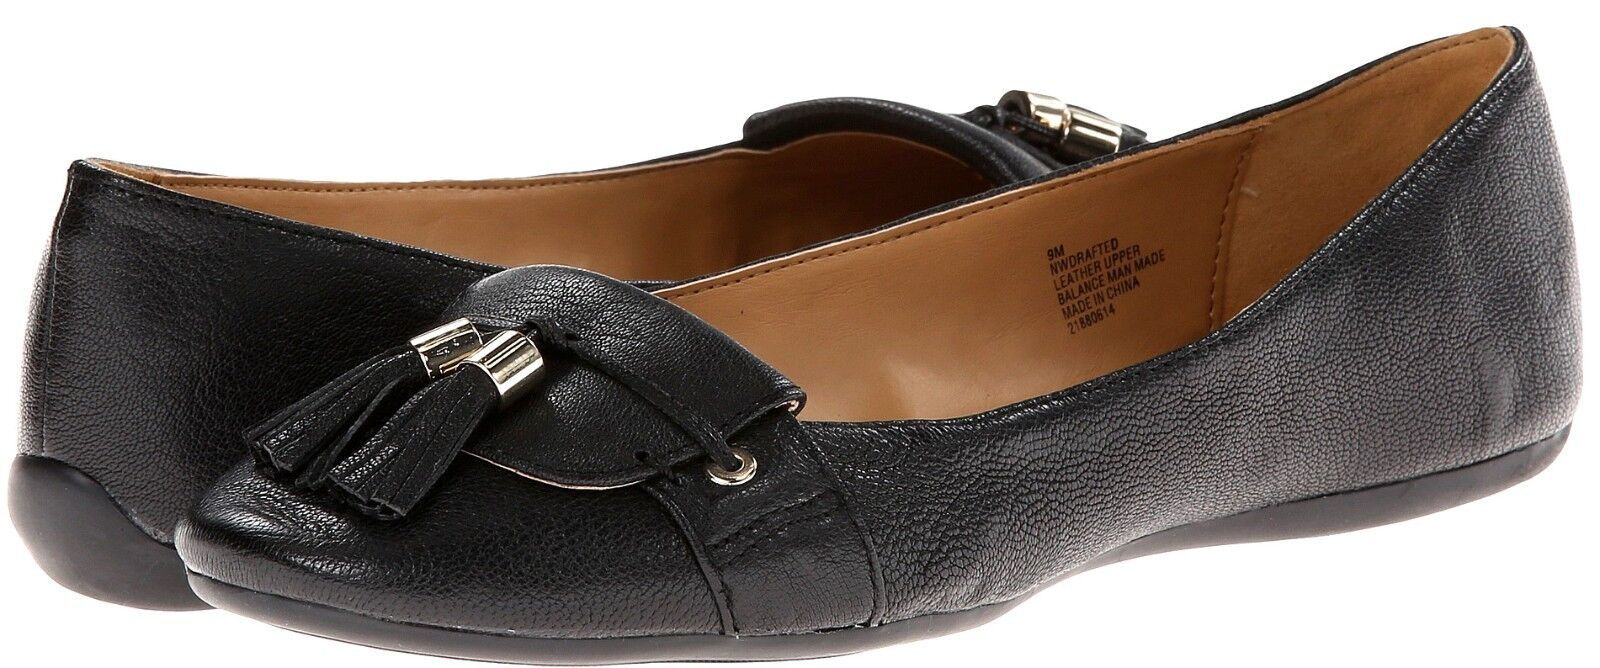 New Nine West Drafted leather women's shoes sz 9.5